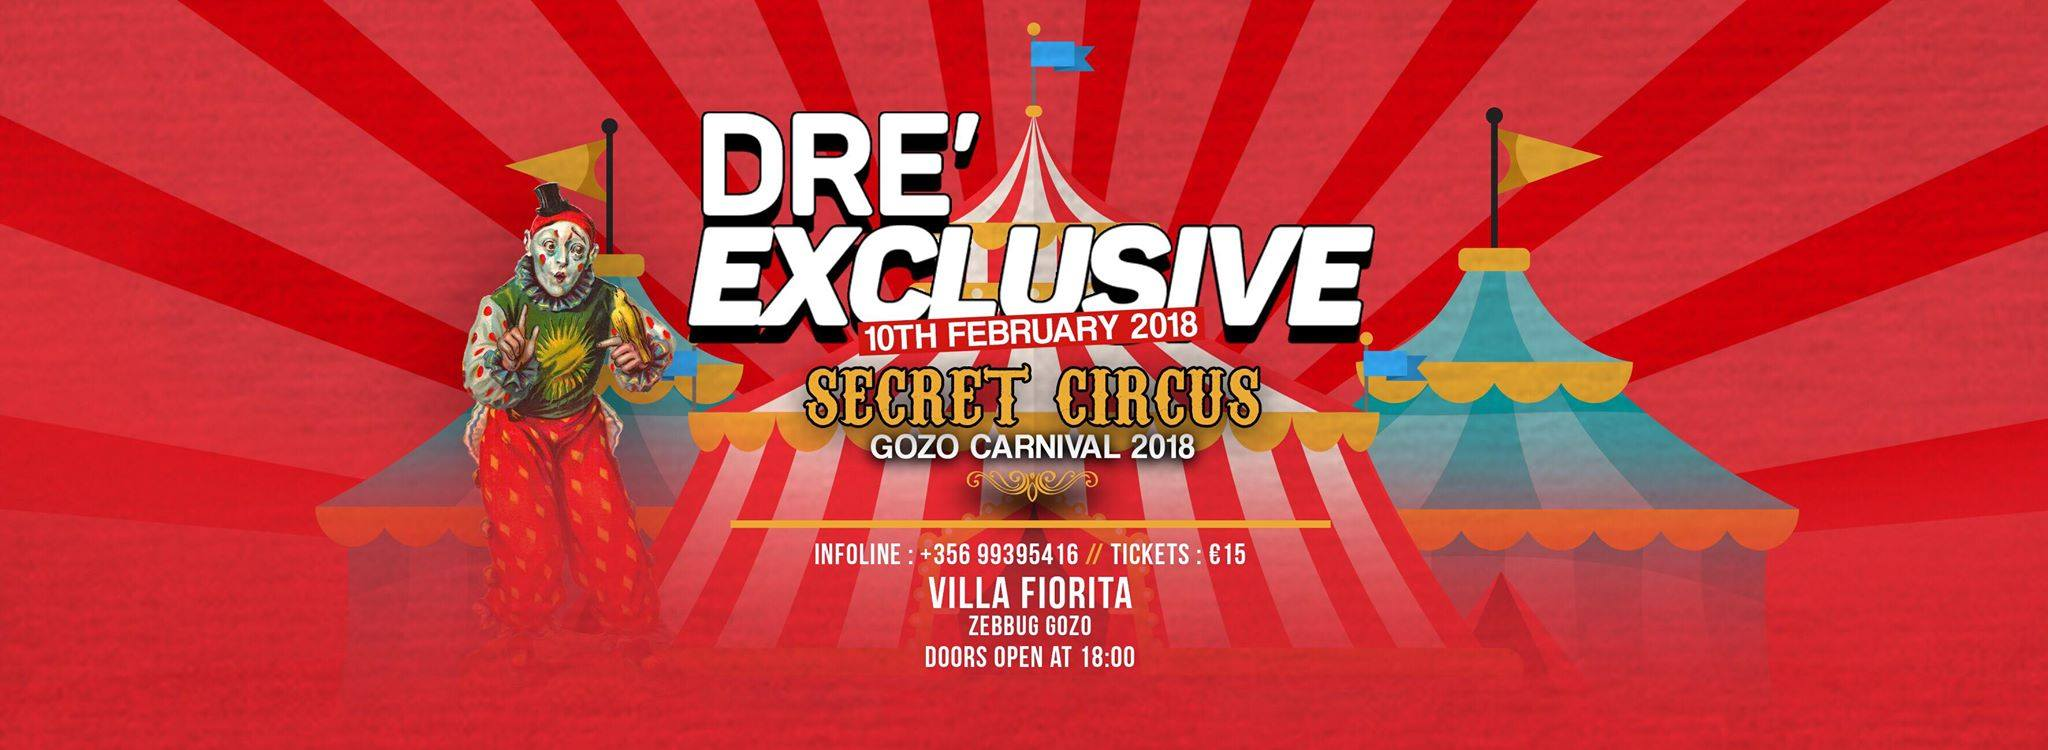 DRE' Exclusive:: Secret Circus Gozo Carnival